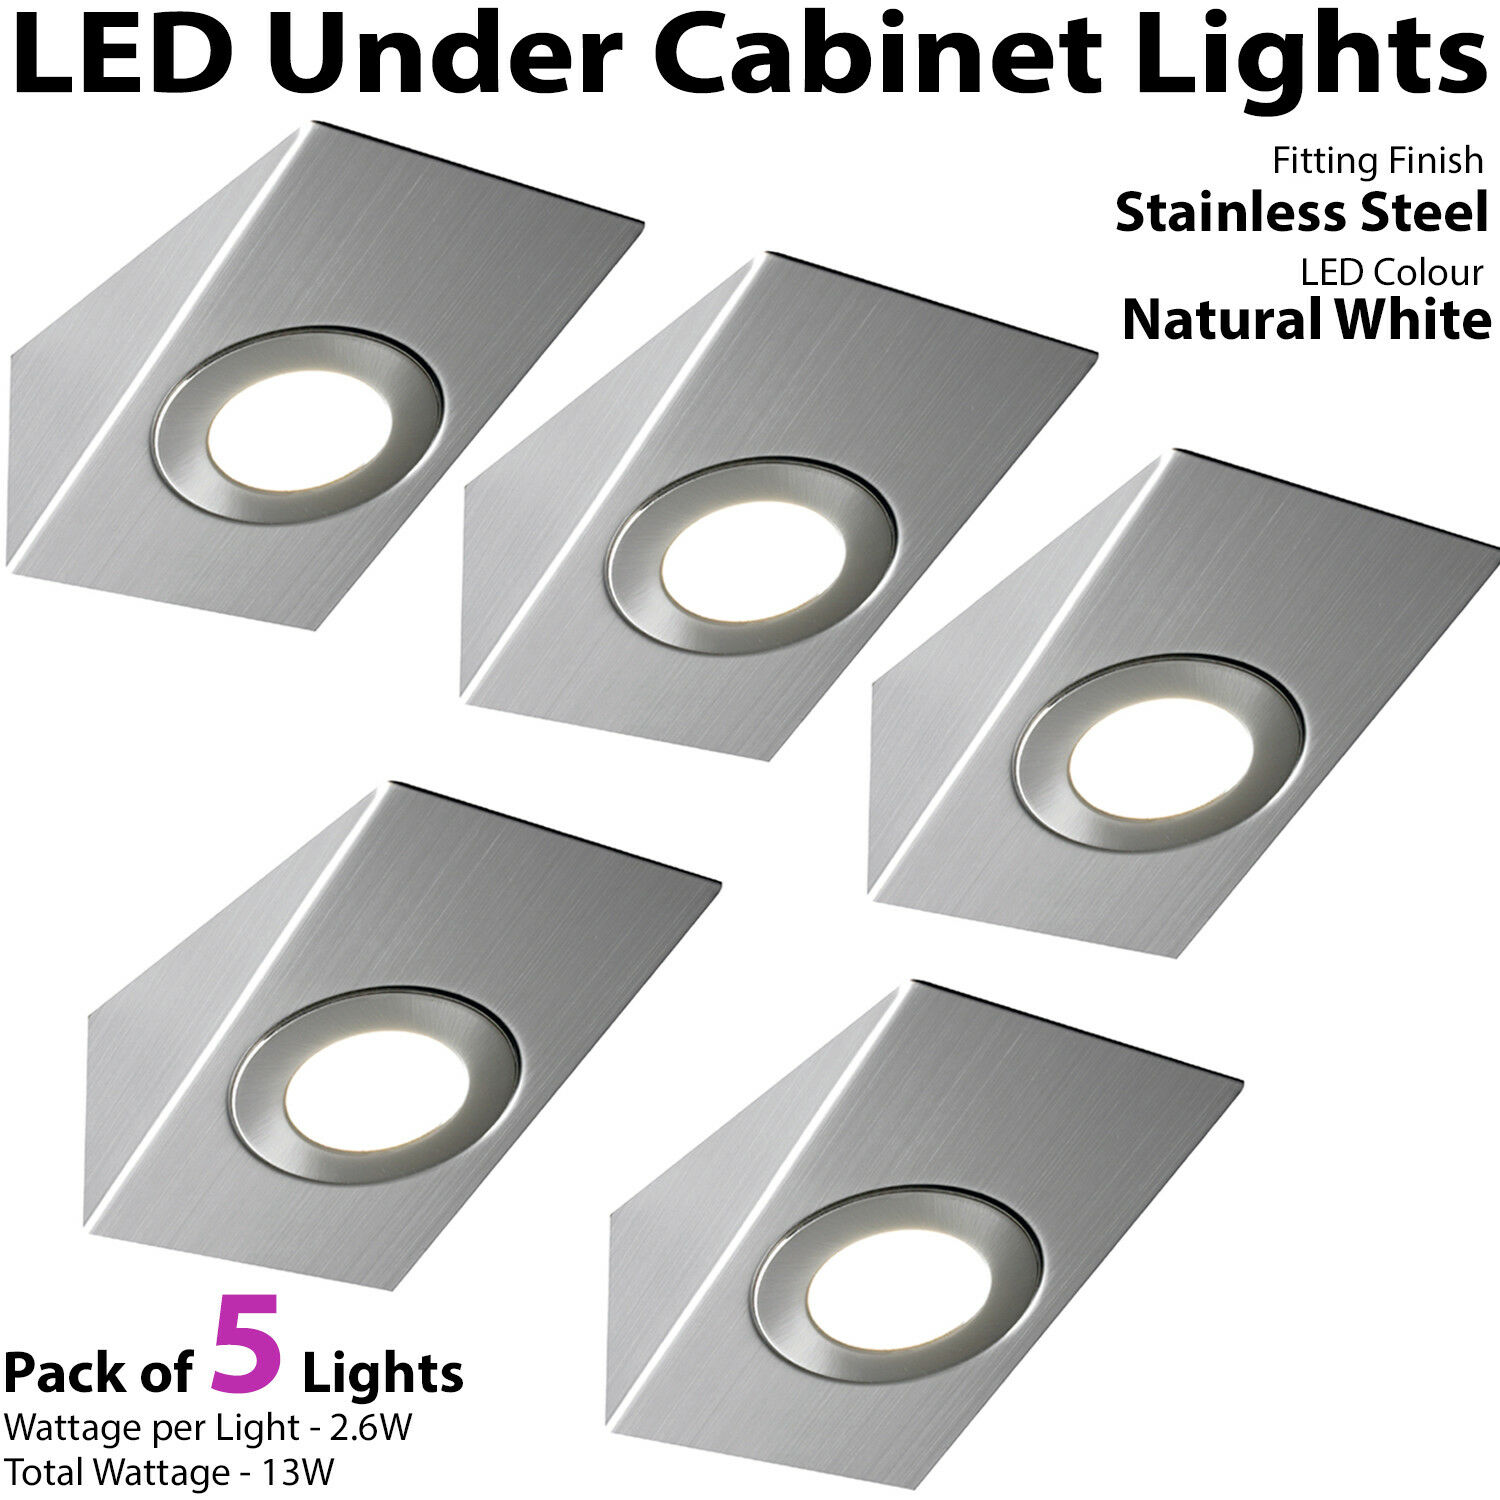 5x 2.6W Led Kit Cuisine Coussin Éclairage Spot & Driver Kit Led Inoxydable Steel-Natural cde600